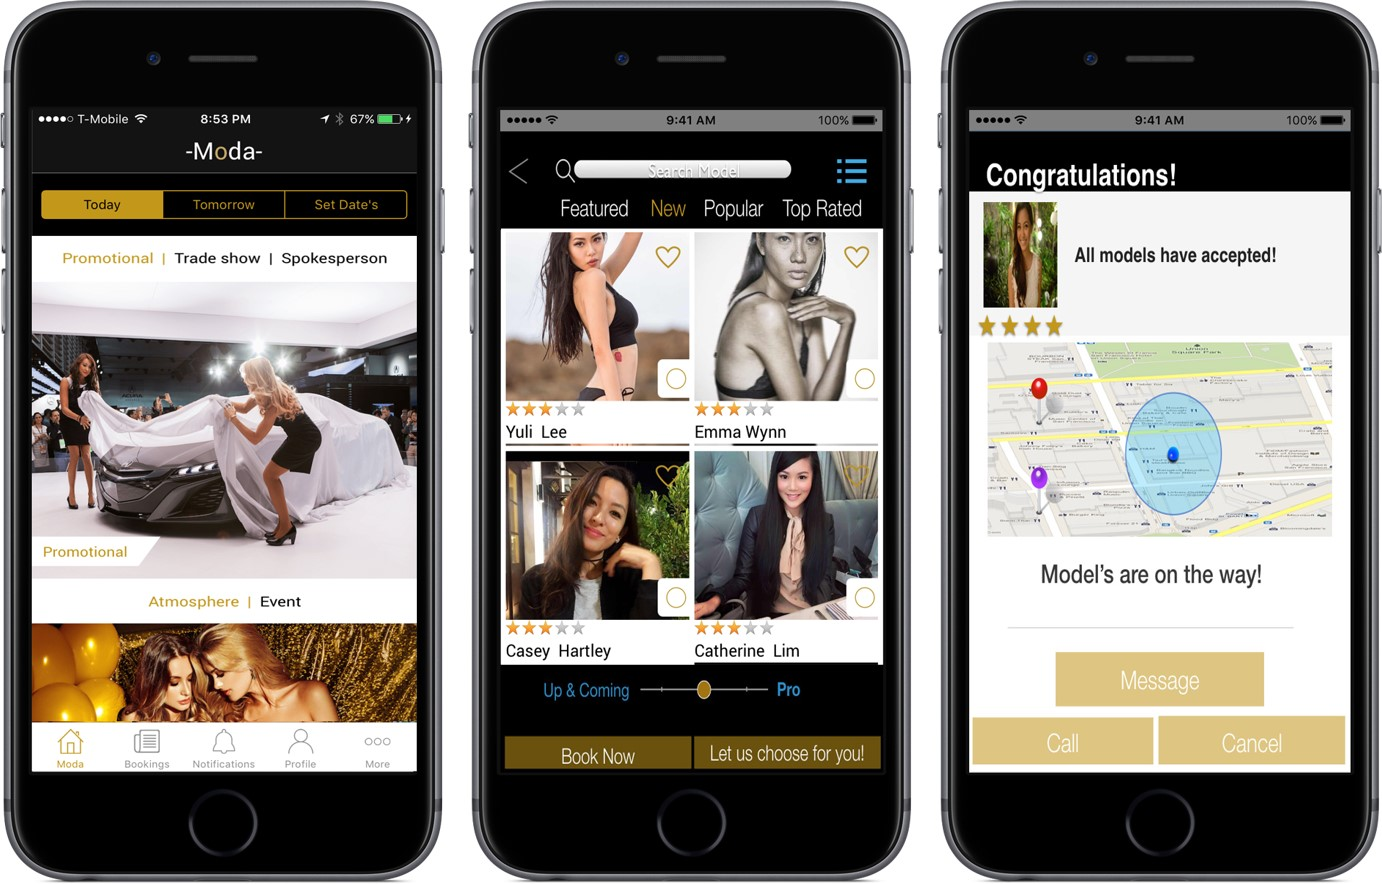 Moda models on demand app